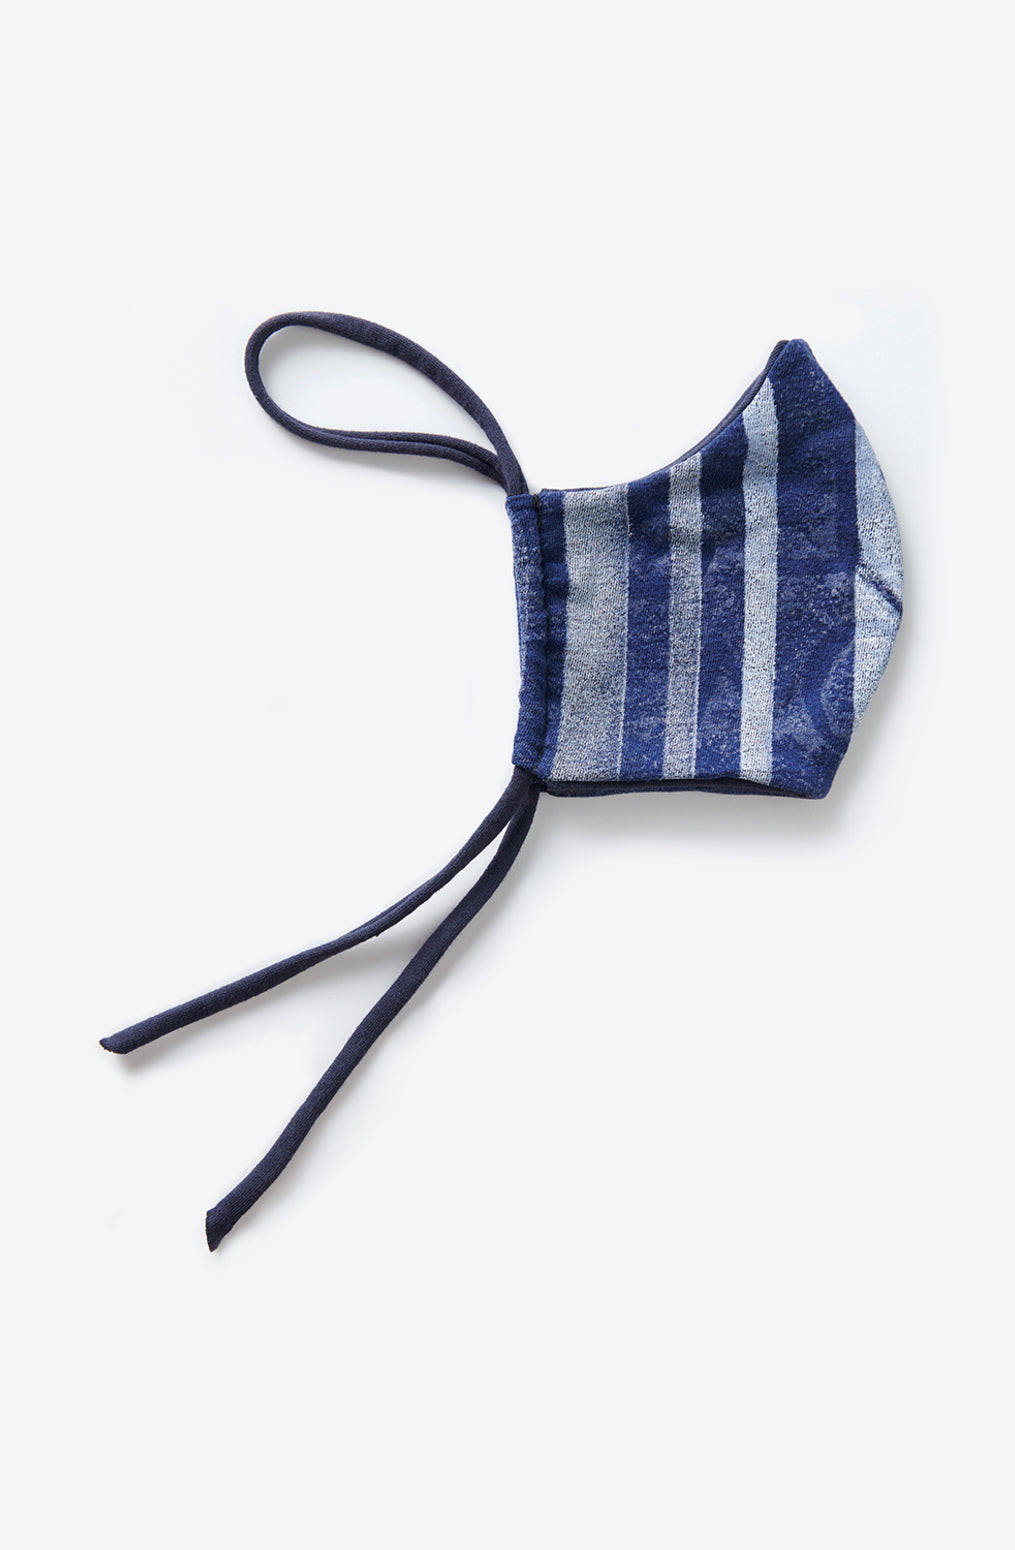 Alabama Chanin Graffiti Face Mask Machine-Sewn Reusable Face Mask in Blue with Hand-Painted white Stripes